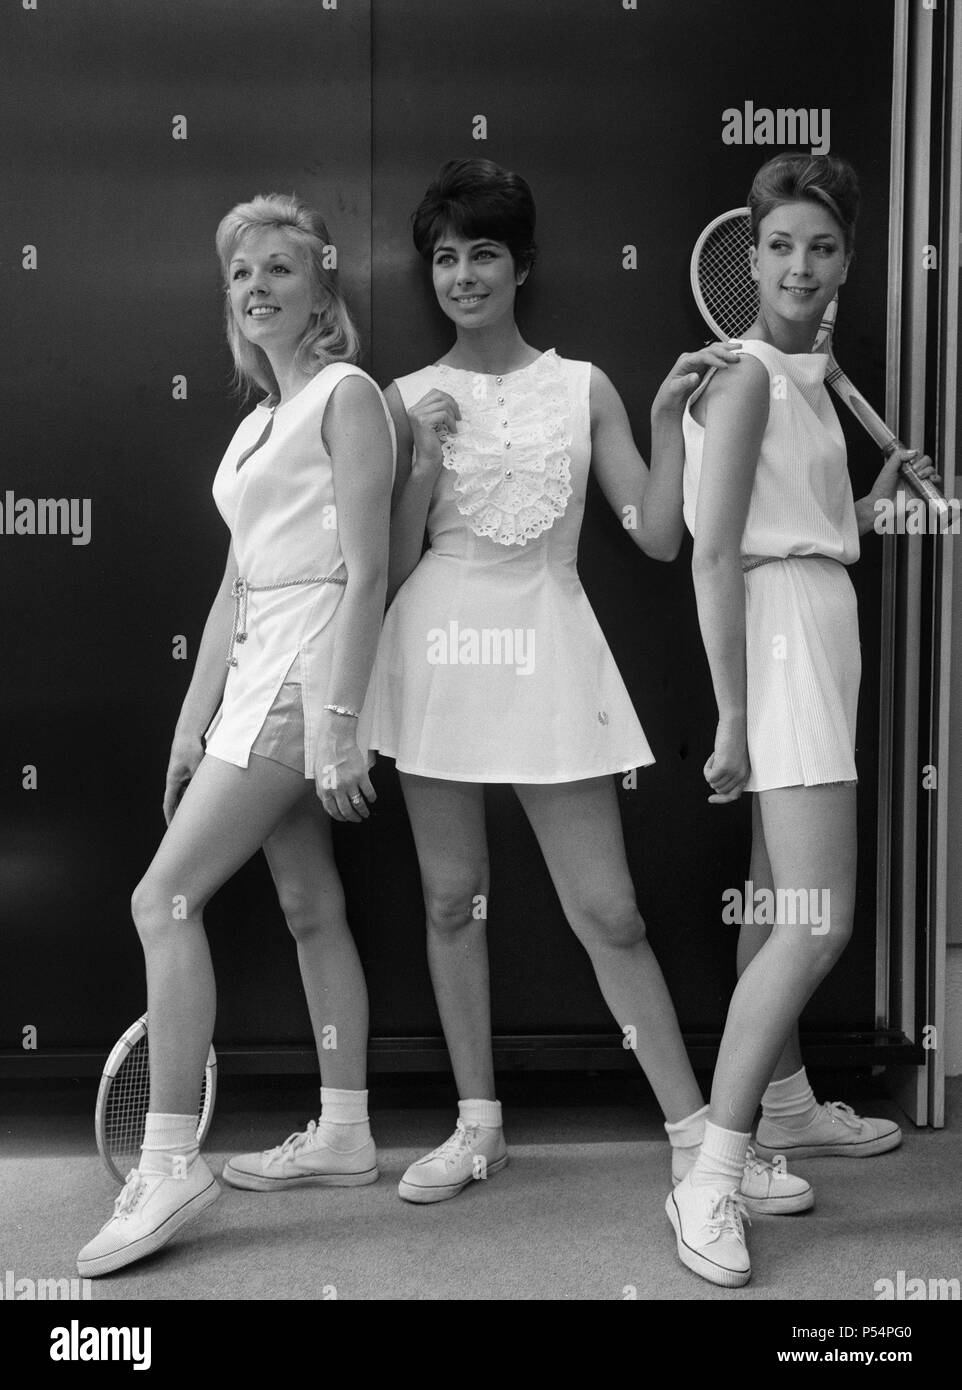 Fashions for Wimbledon Photoshoot. Models displaying a selection of Fred Perry designs for Wimbledon. 12th June 1963. - Stock Image